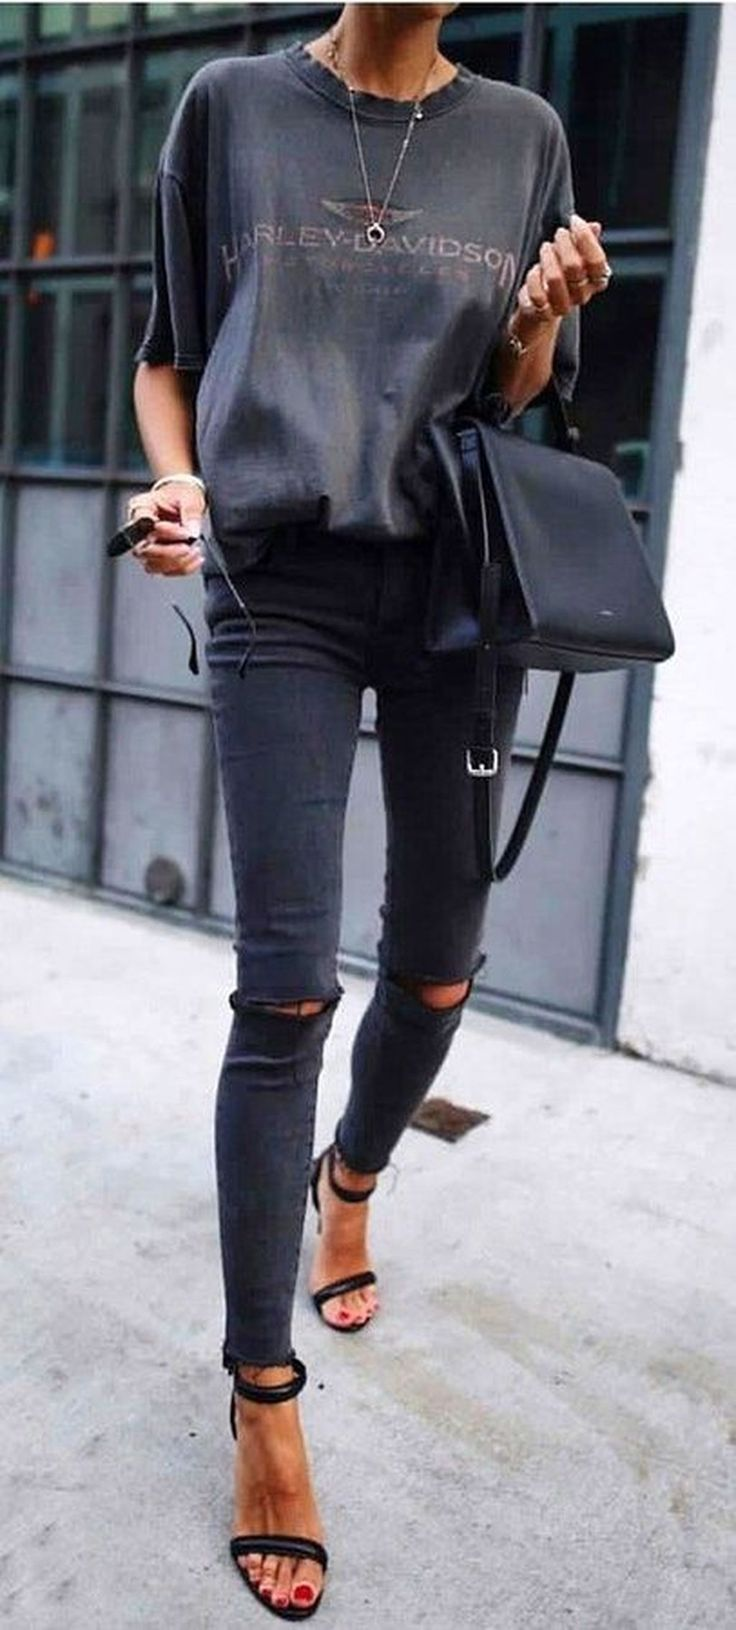 Awesome 46 Stunning Teen Winter Outfits Ideas. More at http://aksahinjewelry.com/2018/01/17/46-stunning-teen-winter-outfits-ideas/